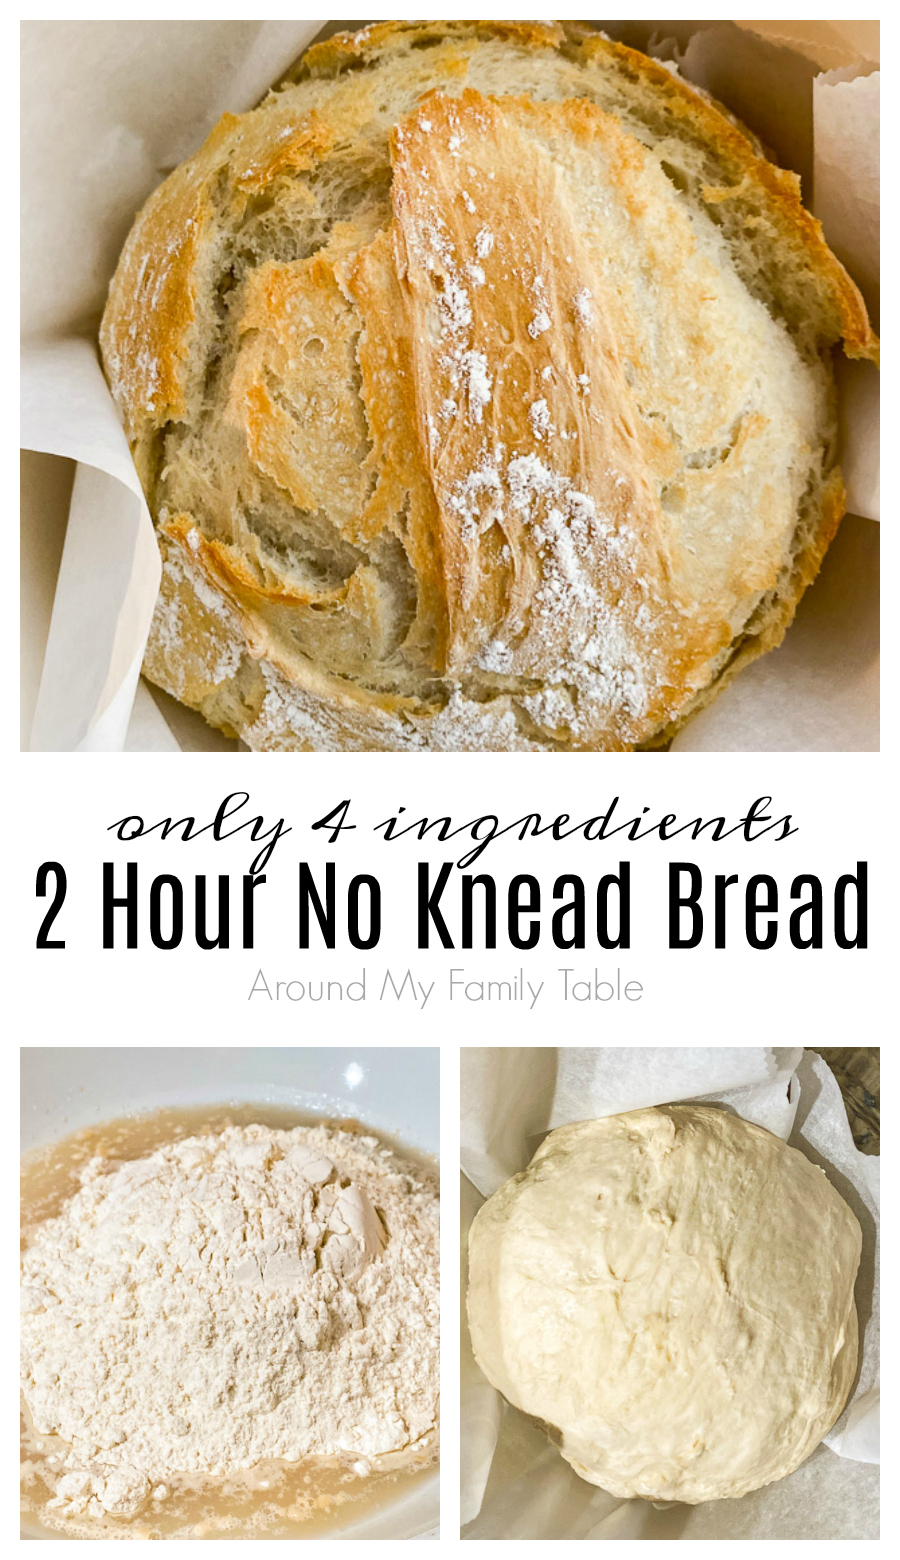 Making bread at home has never been easier than with my recipe for the Easiest 2 Hour No Knead Bread. Only 4 ingredients and 2 hours to hot, delicious bread on your table. via @slingmama